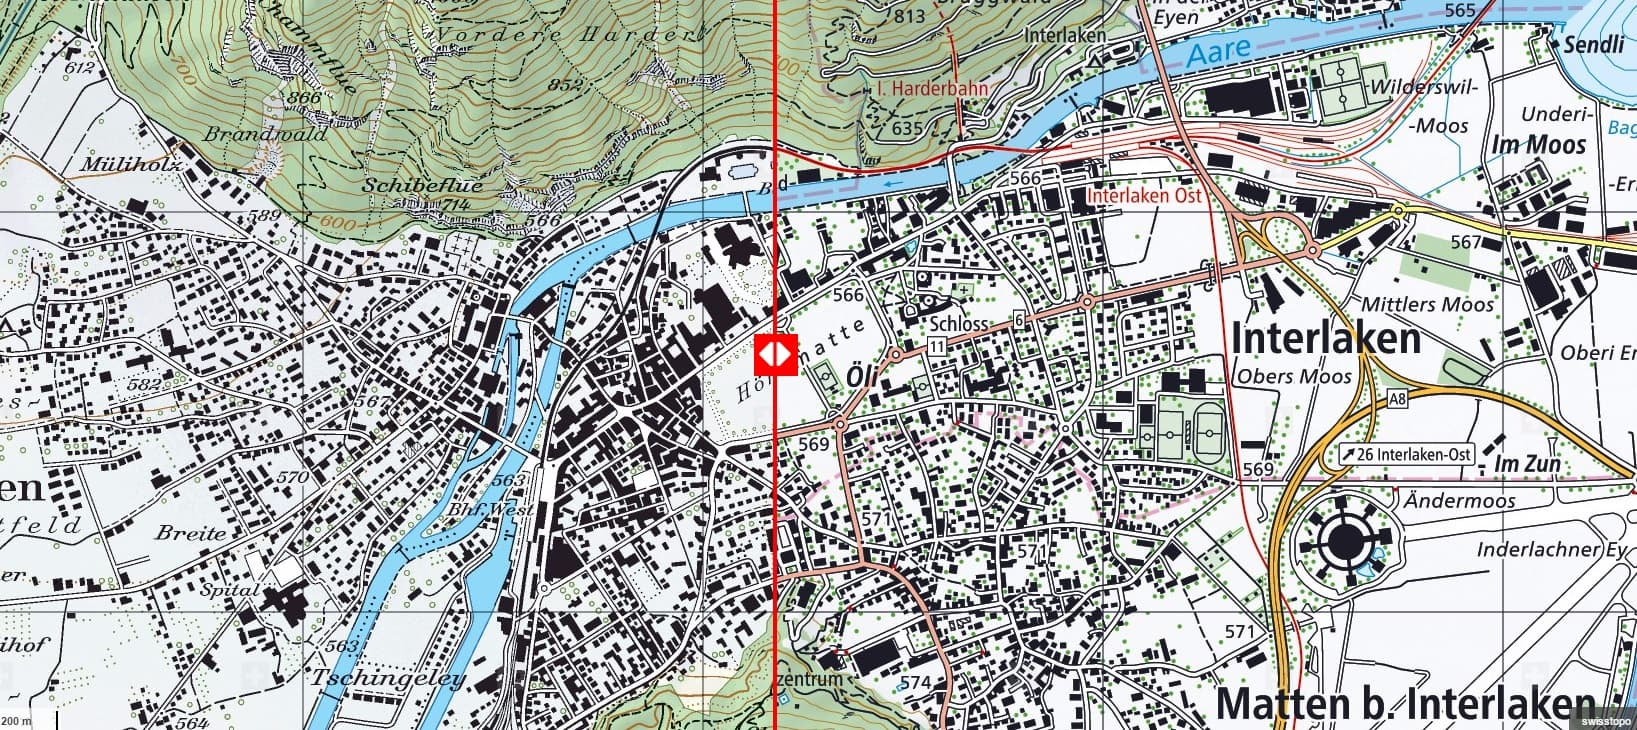 A comparison of old (left) and new (right) topographic maps produced by swisstopo.